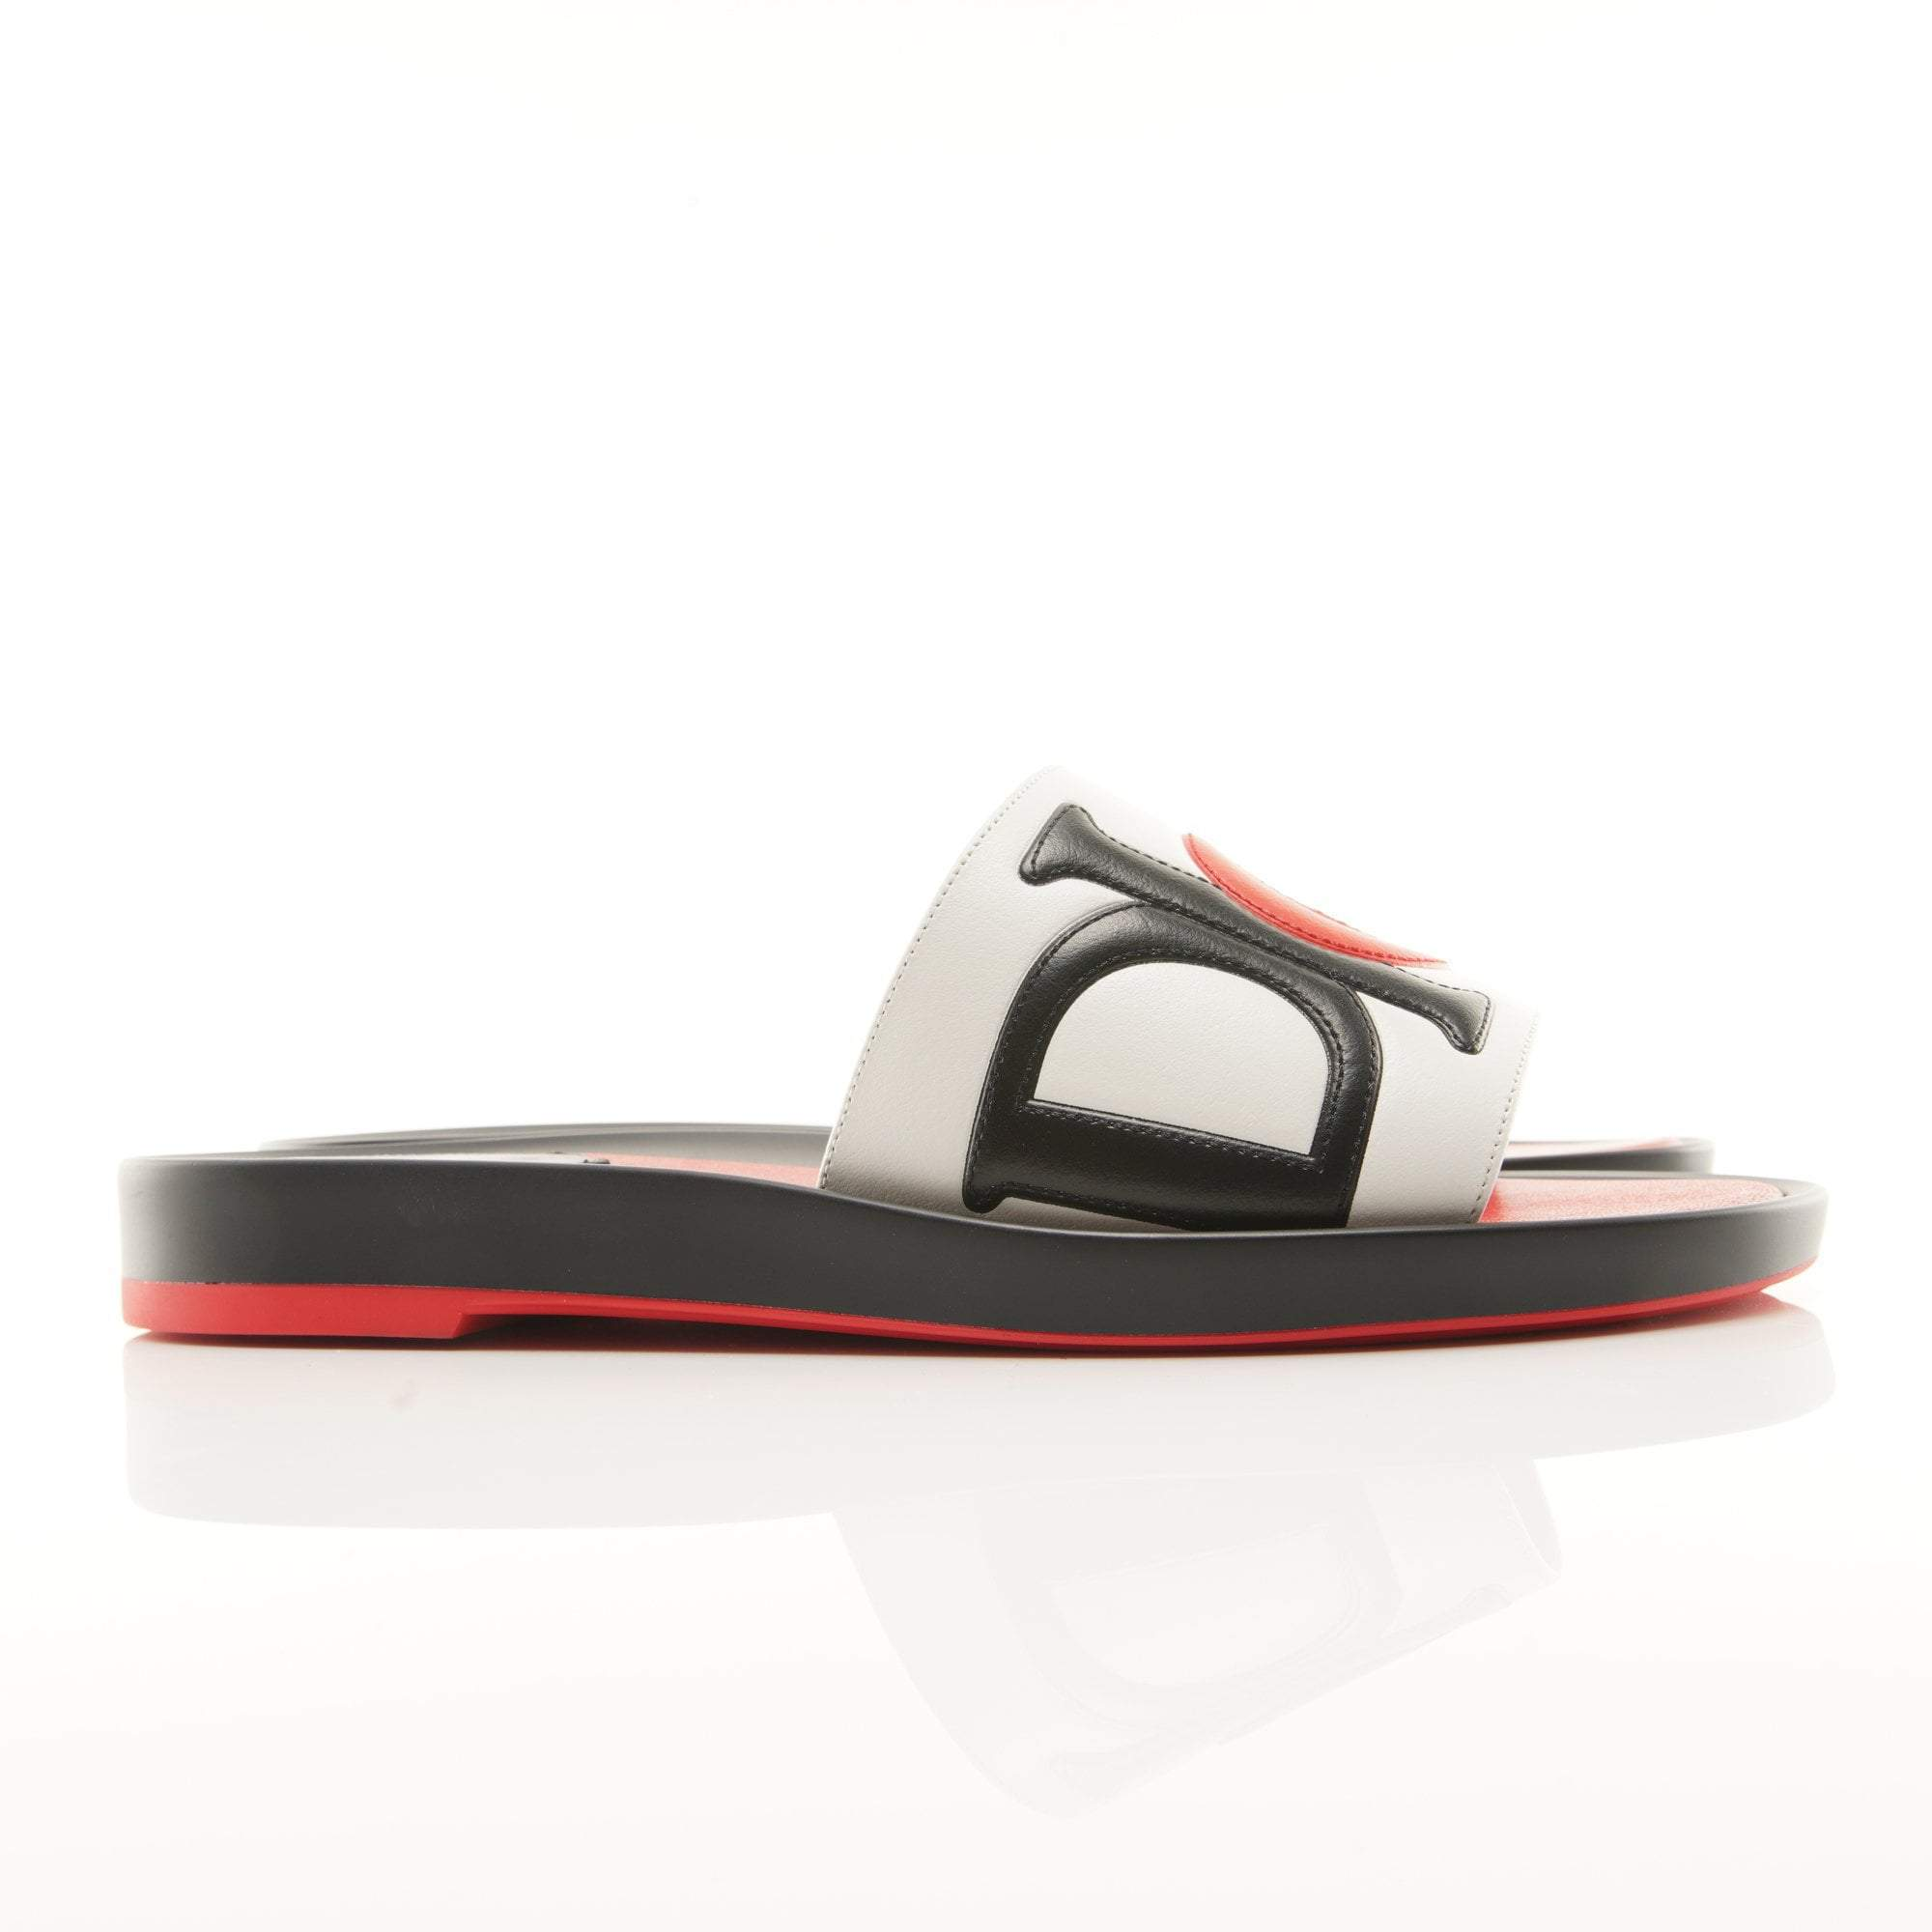 Christian Dior Marina Slides in Black and Red